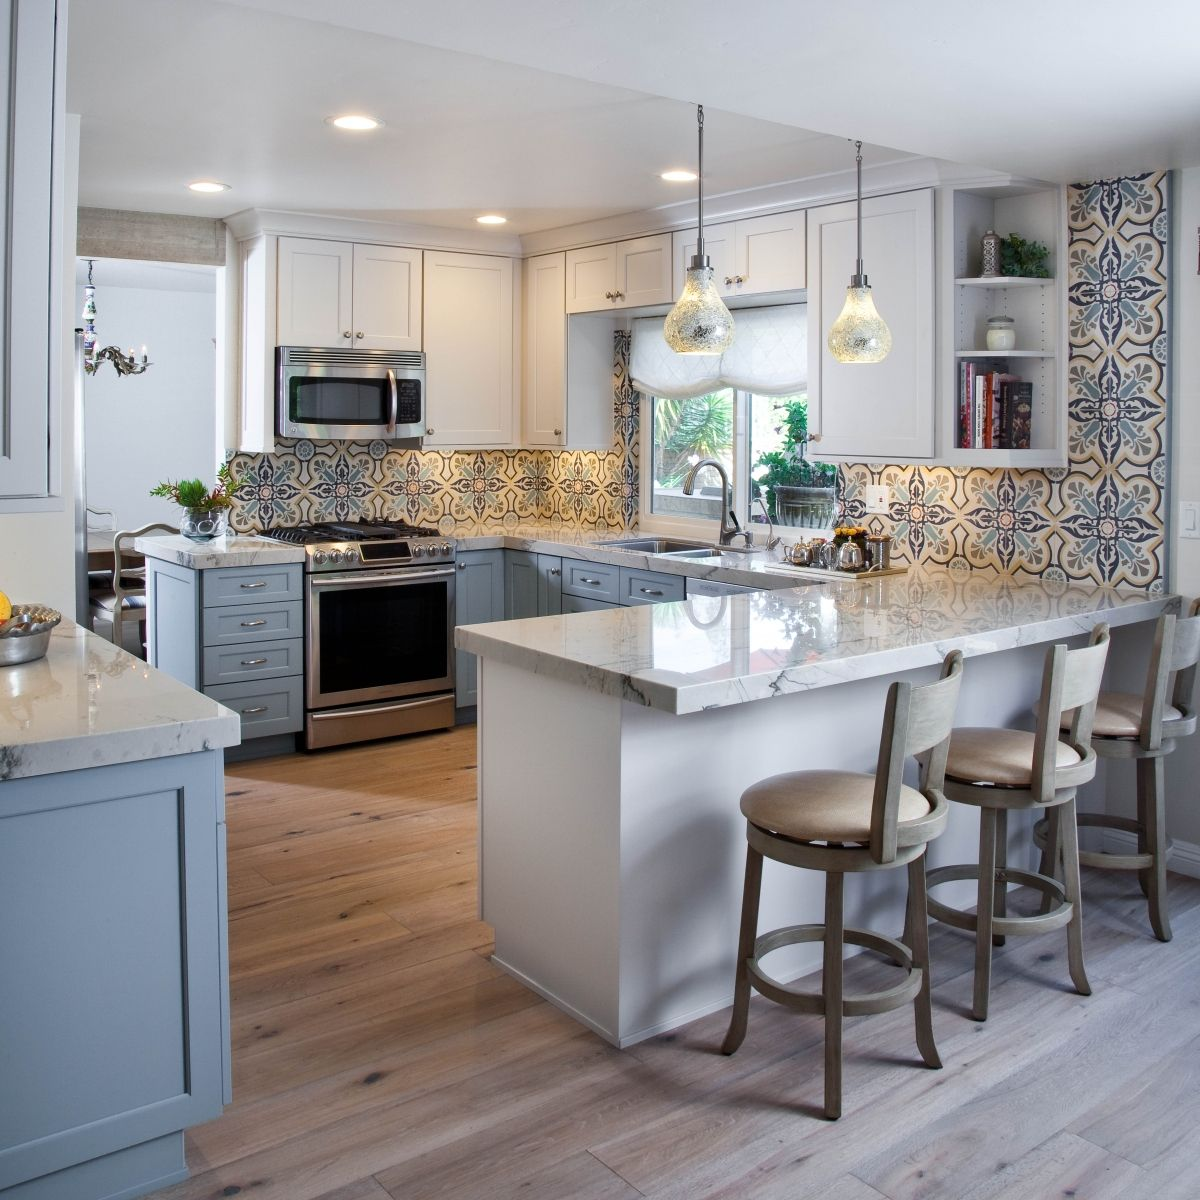 Remodel Stories: A Colorful Kitchen Makeover In 2019